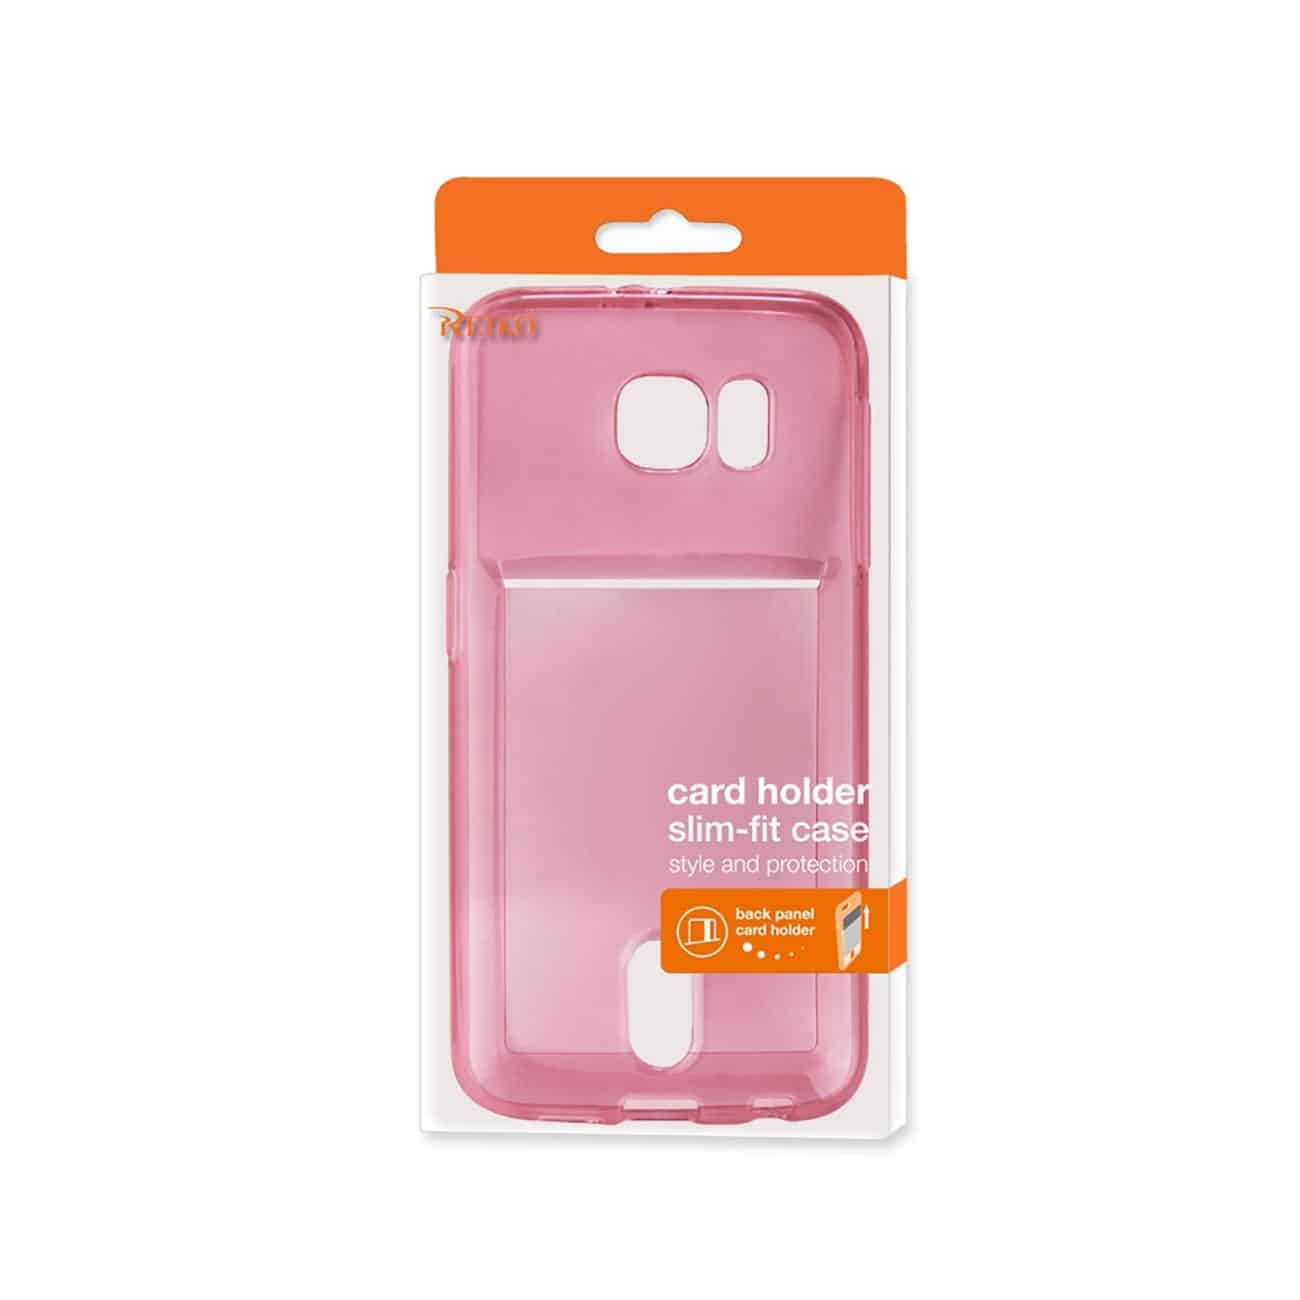 SAMSUNG GALAXY S6 SEMI CLEAR CASE WITH CARD HOLDER IN CLEAR HOT PINK